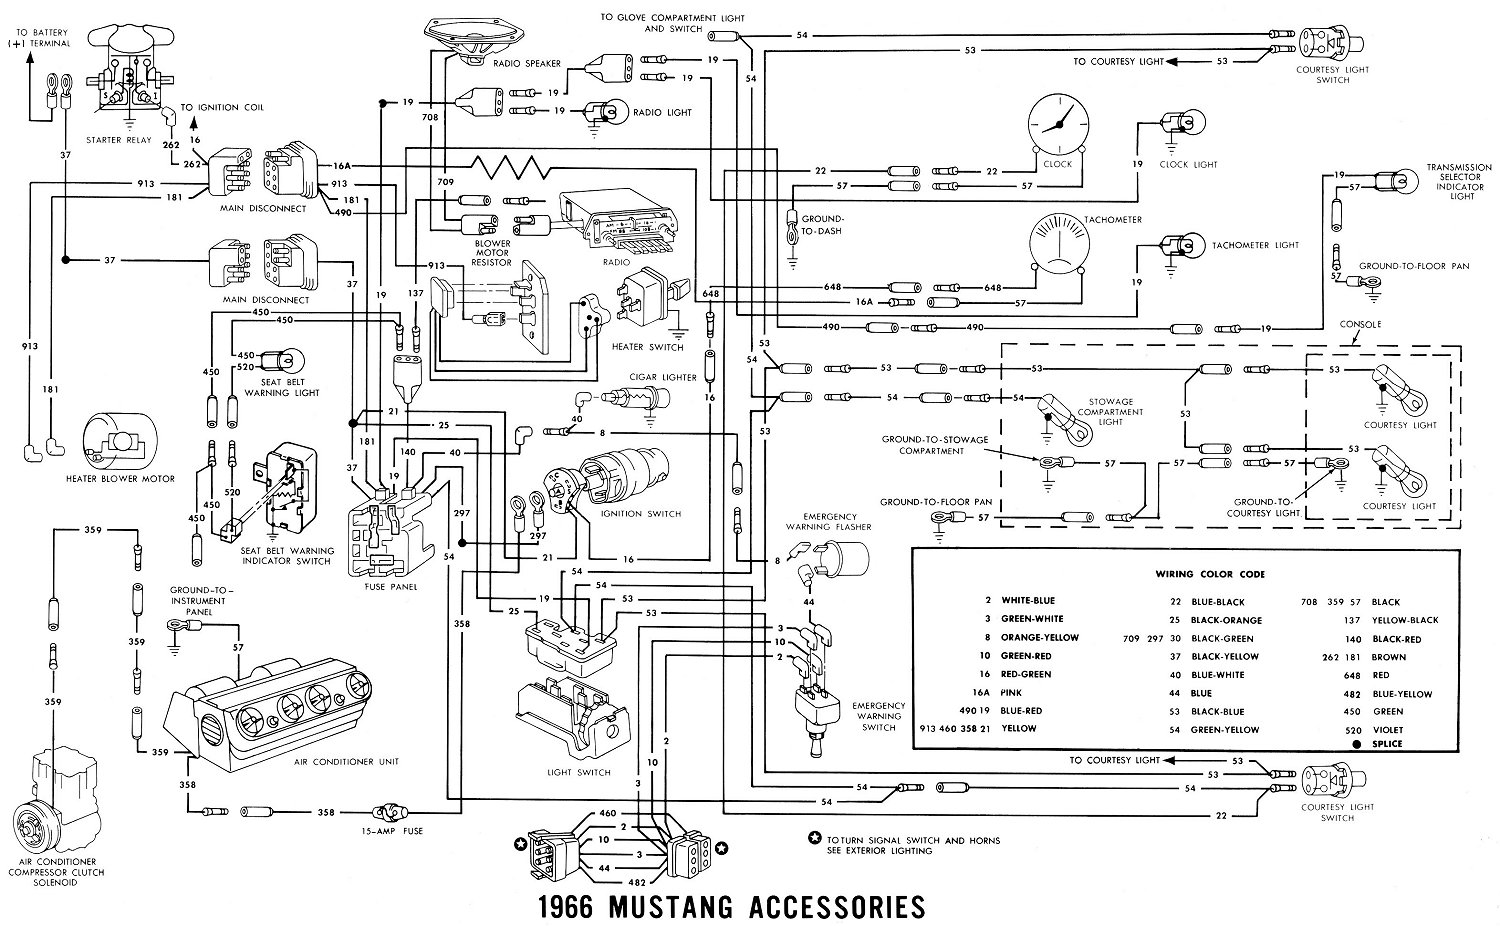 66acces1 65 mustang wiring diagram 1965 mustang alternator wiring \u2022 wiring sick dt50 wiring diagram at nearapp.co